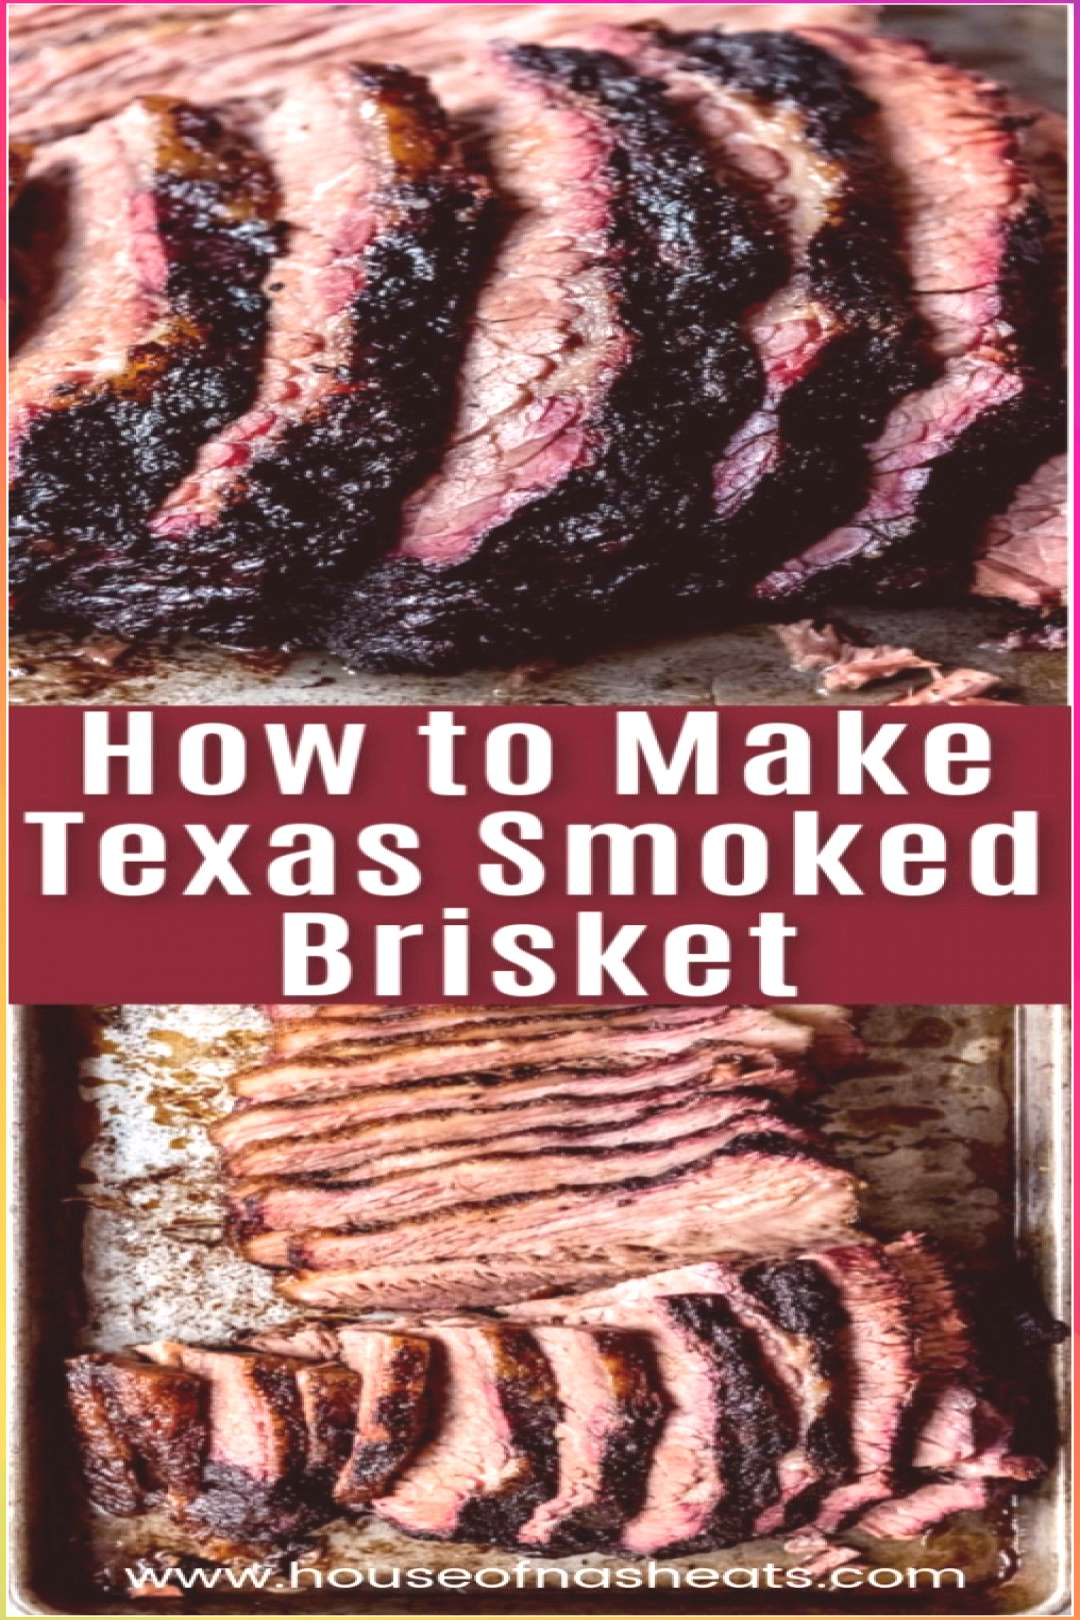 Texas Smoked Brisket - Meat Recipes Meat R...#asian